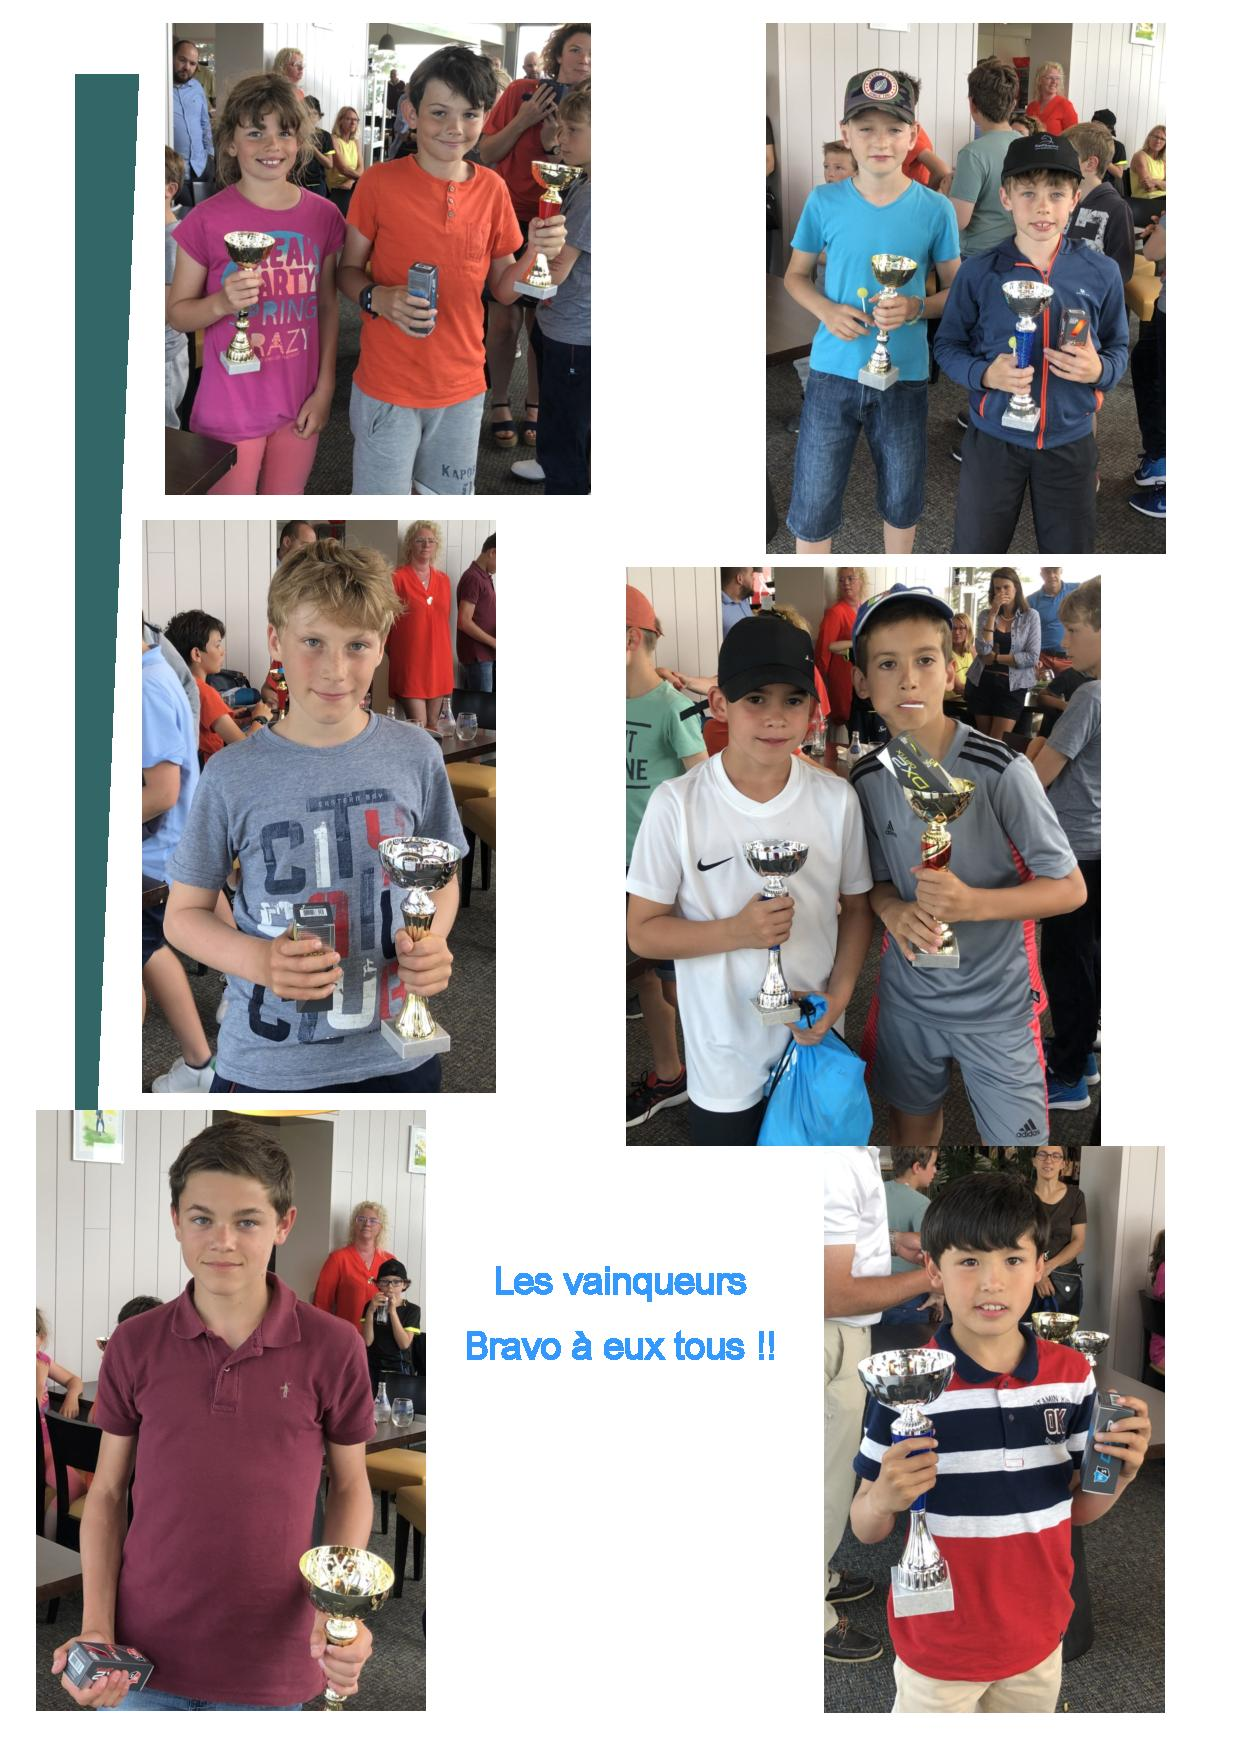 Ecole_de_golf_Competition_de_juin_2019-page-002.jpg